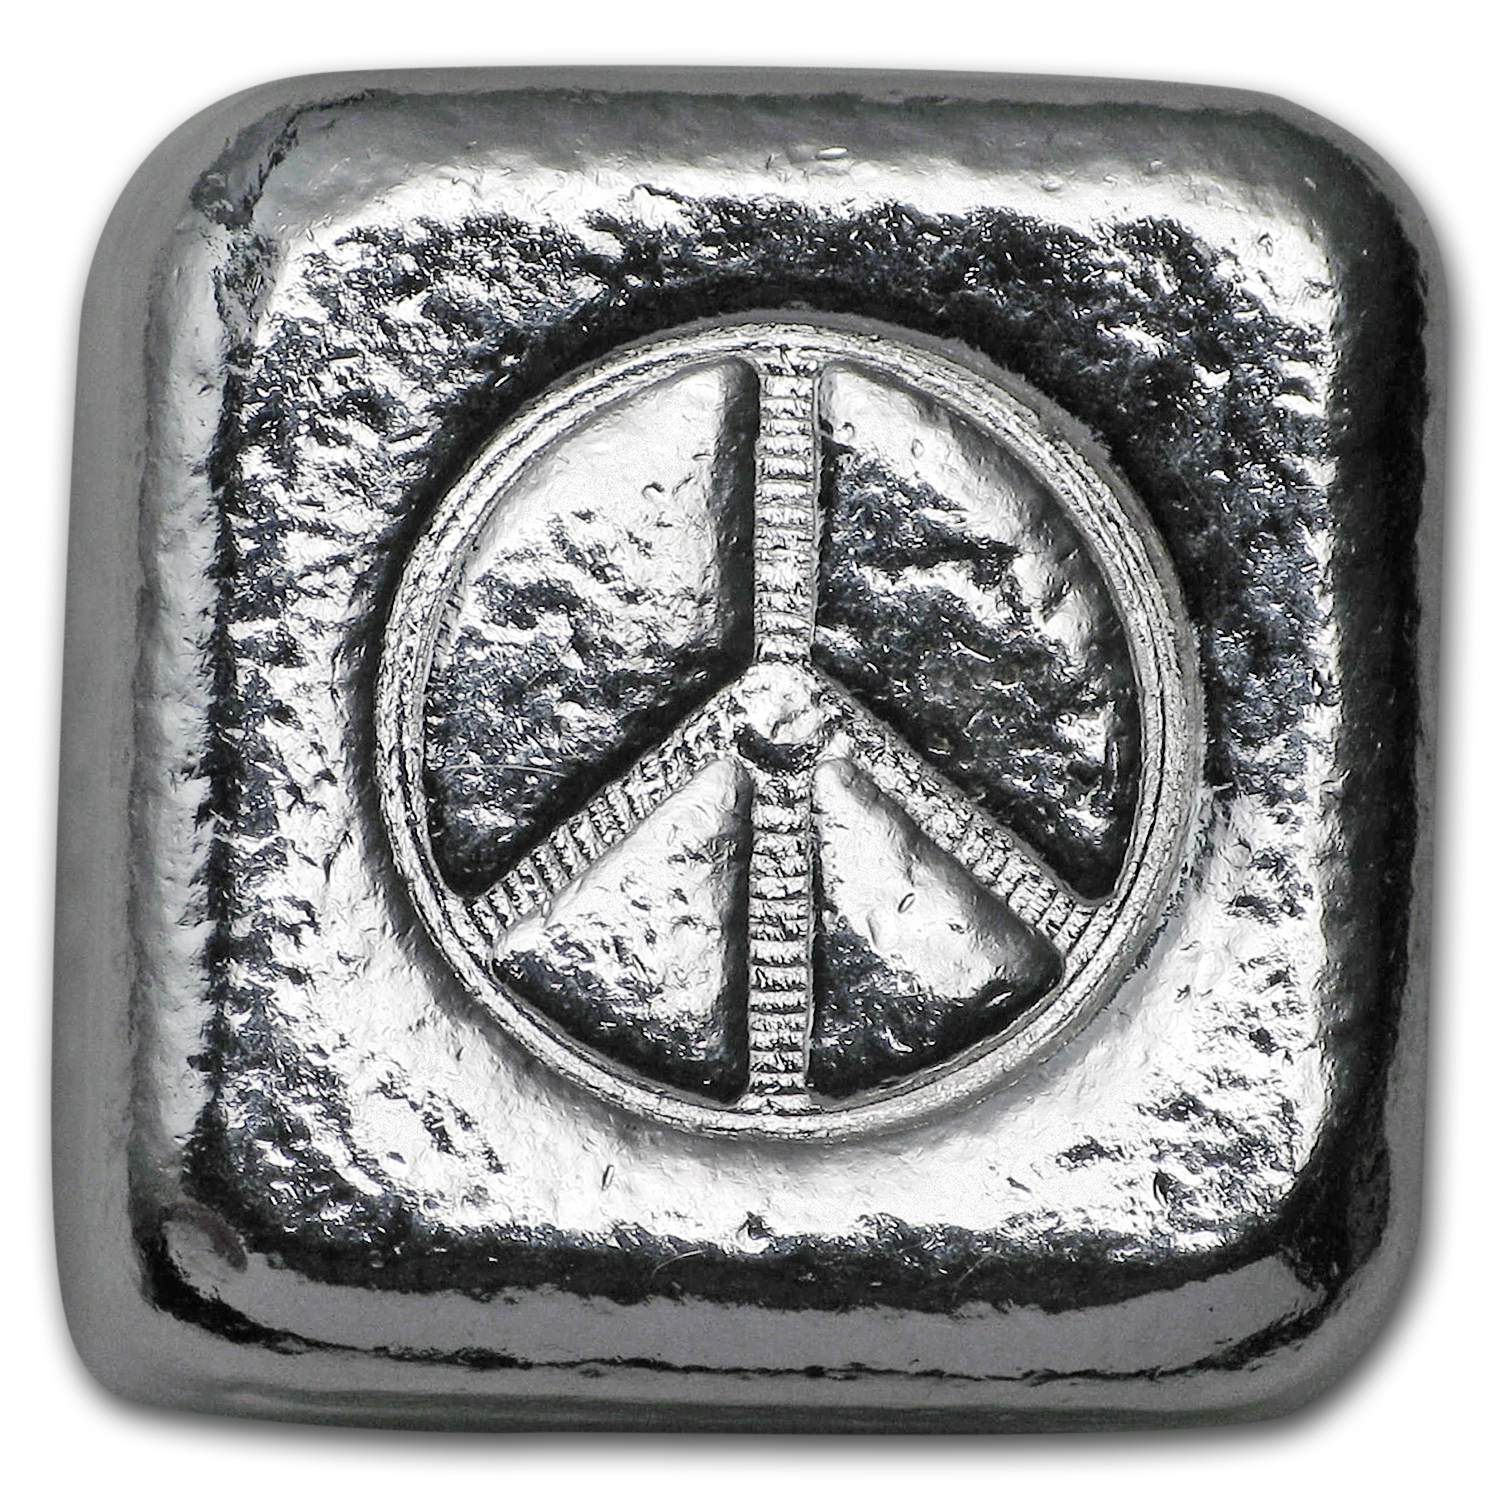 1 oz Silver Cube - Yeager Poured Silver (Peace Sign)